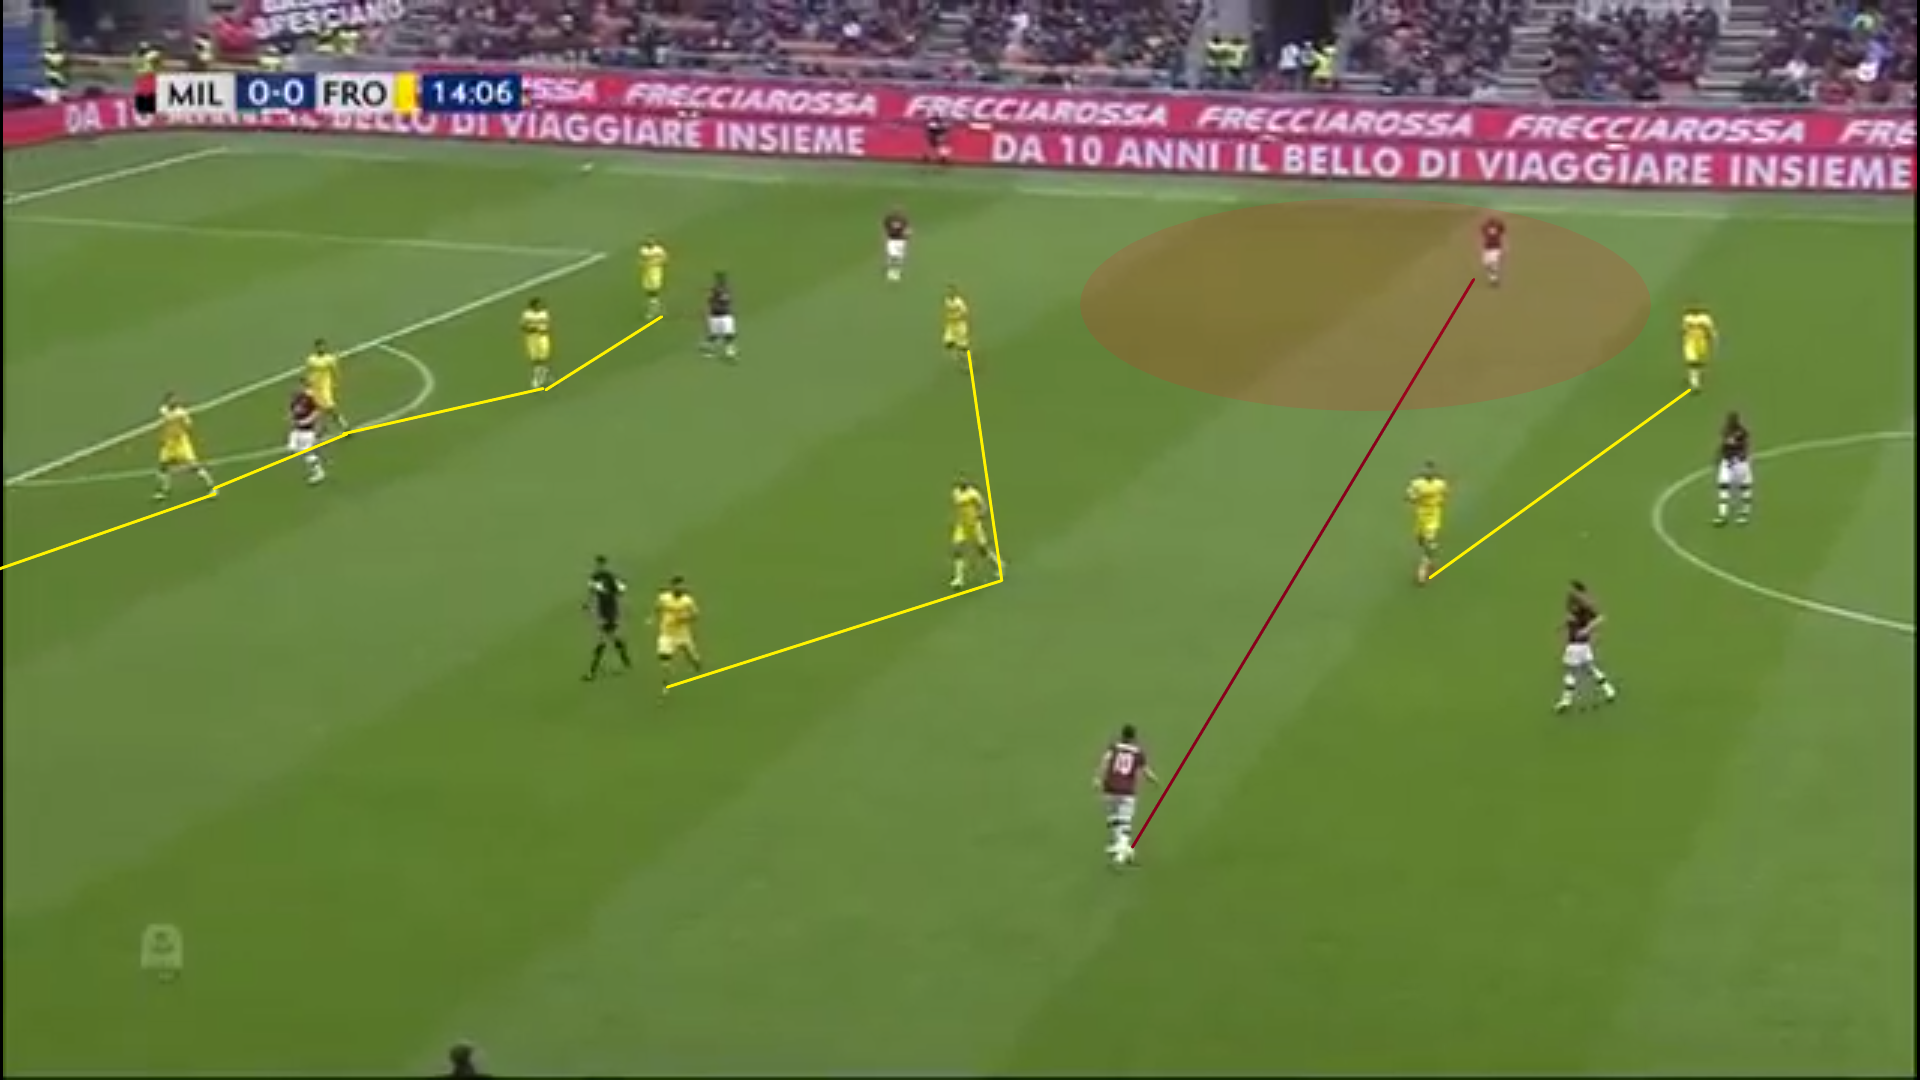 Serie A 2018/19 Tactical Analysis: AC Milan vs Frosinone